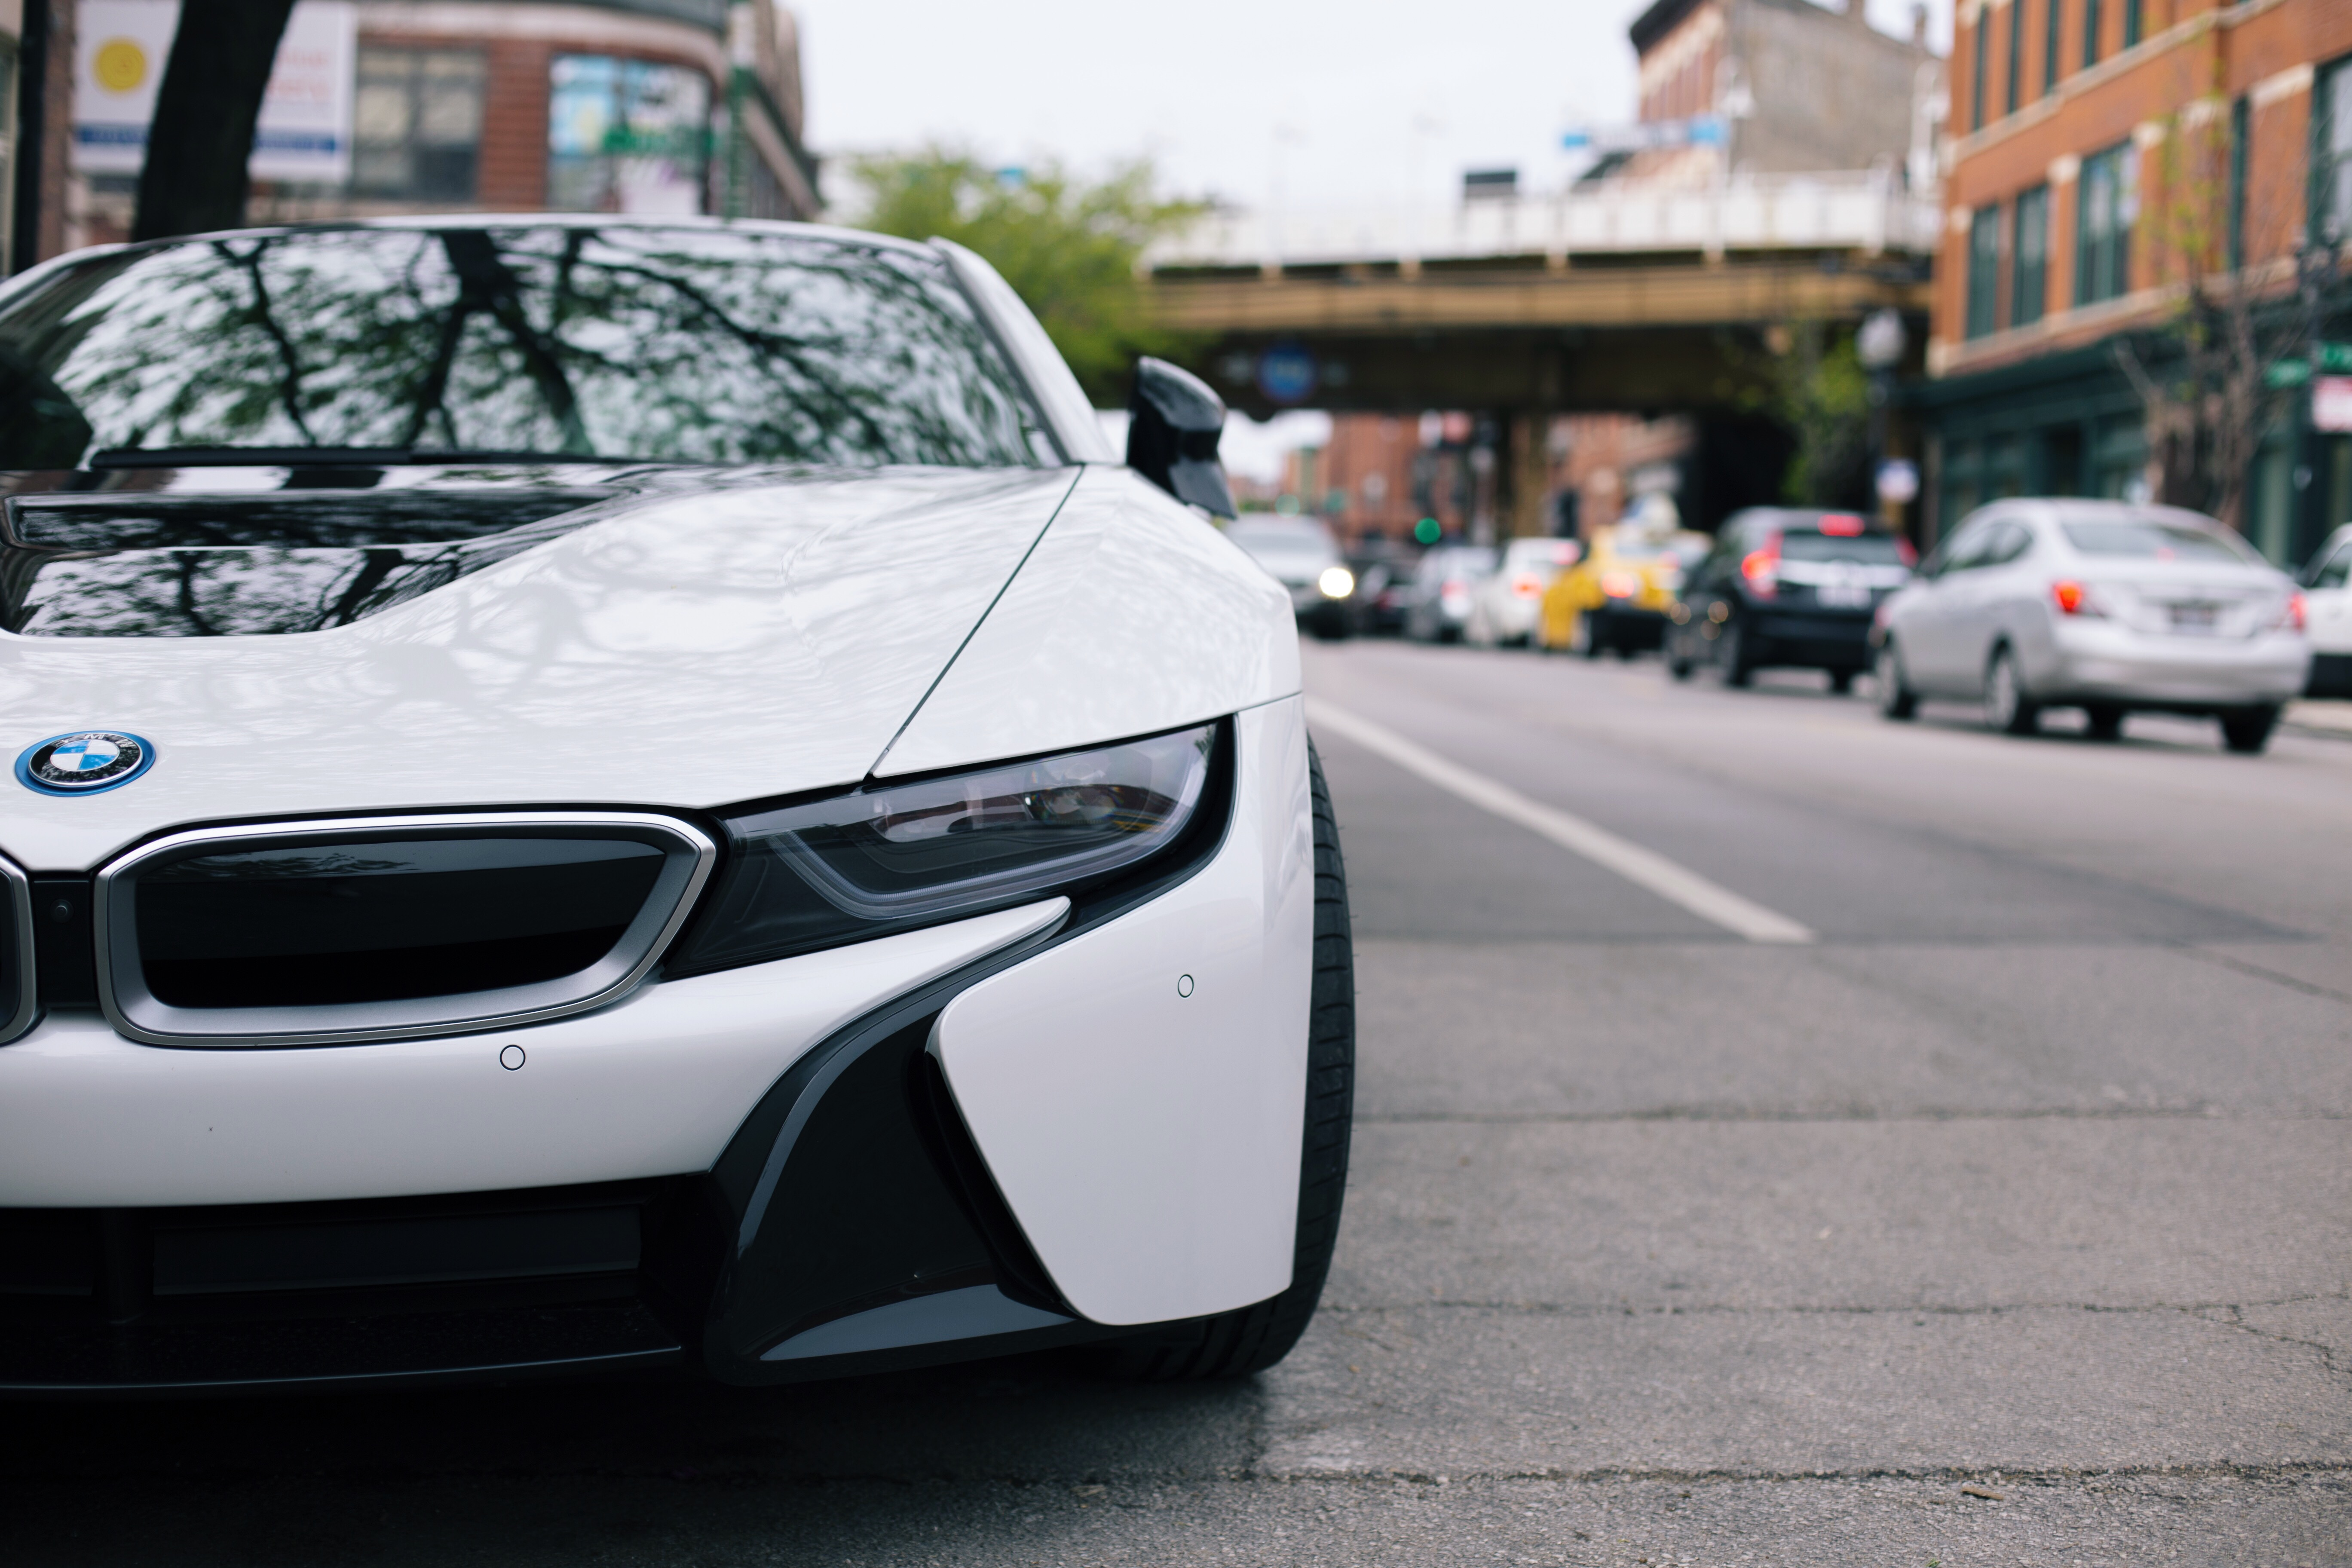 Leasing a Car Online – Is It For Me? - DSR Leasing